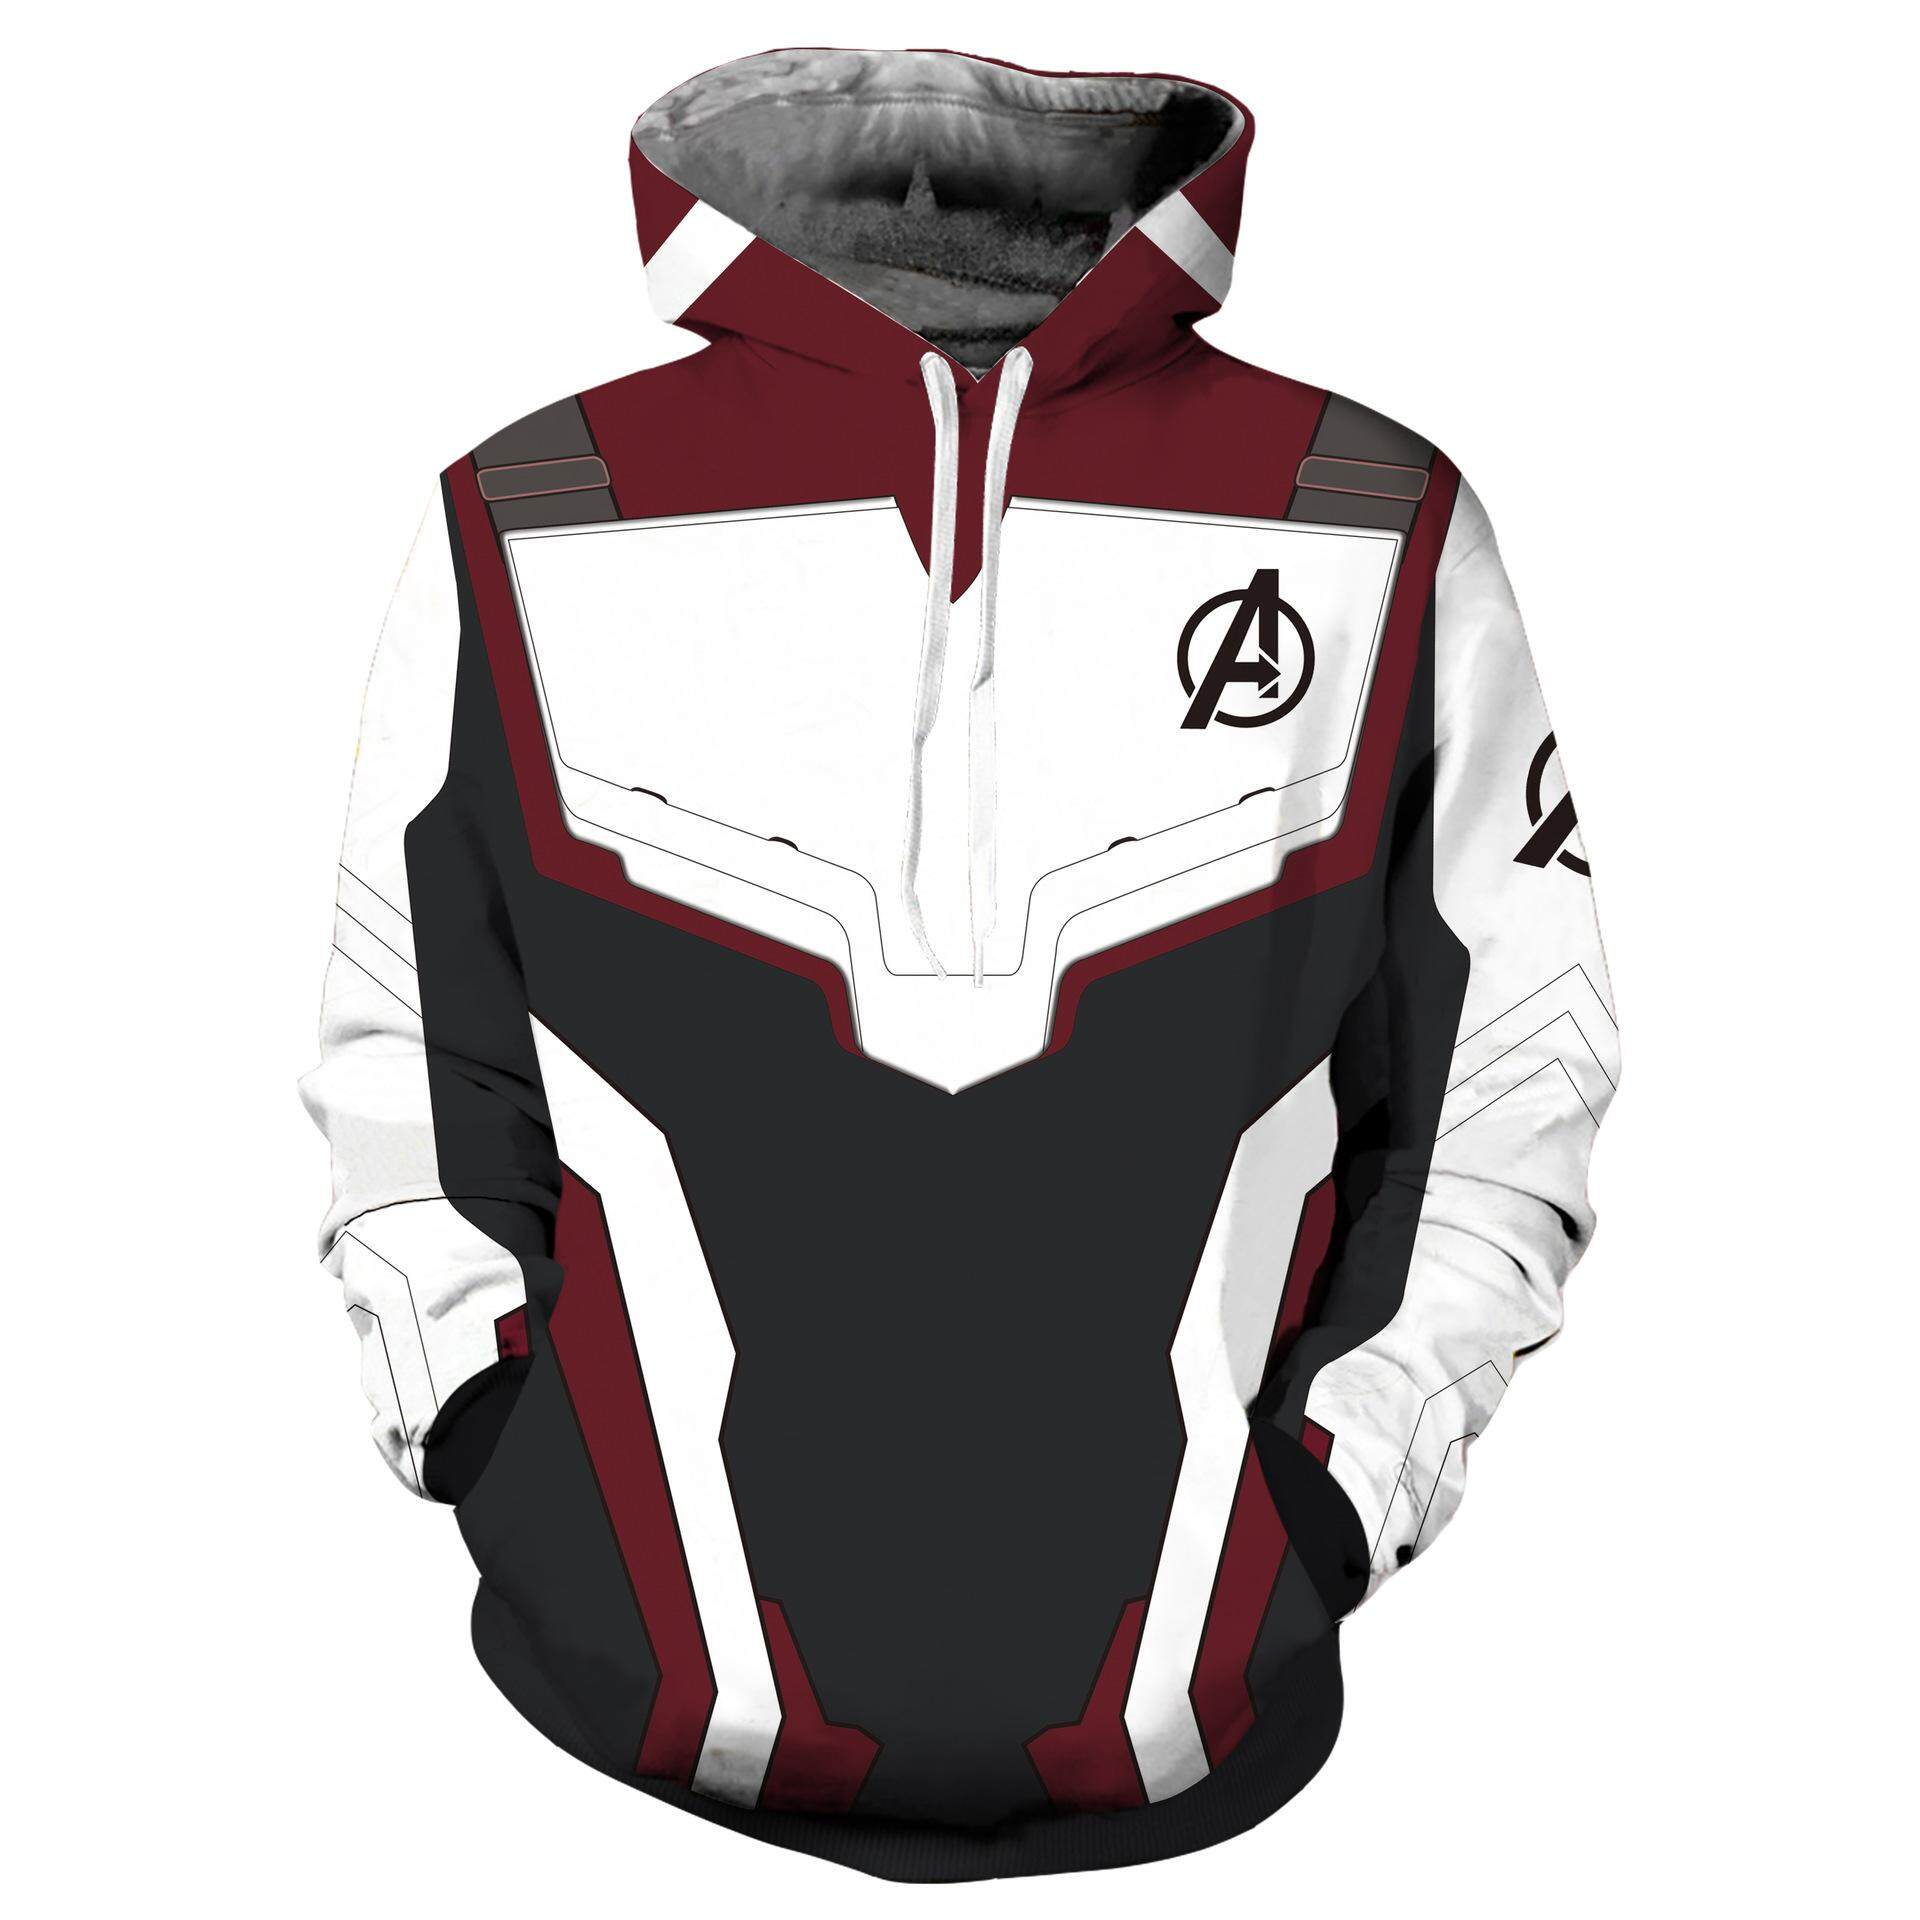 d58cd4fd1 The Avengers 4 Endgame Quantum Realm Sweatshirt Jacket Advanced Tech  Superhero Iron Man Hoodies Suit